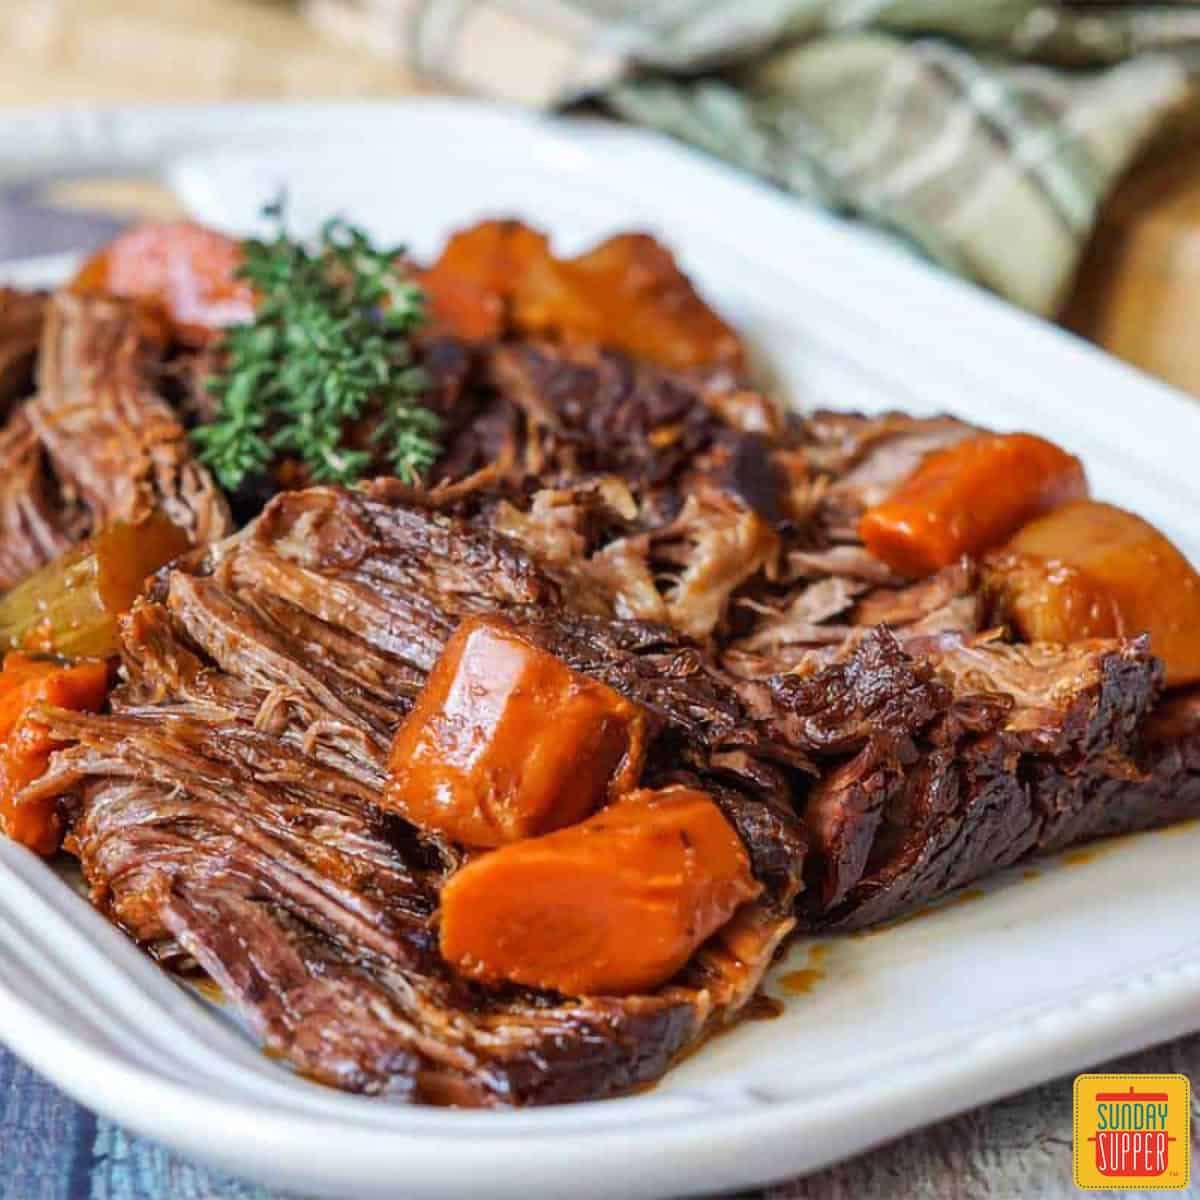 Beef chuck roast on a white plate with carrots and herbs